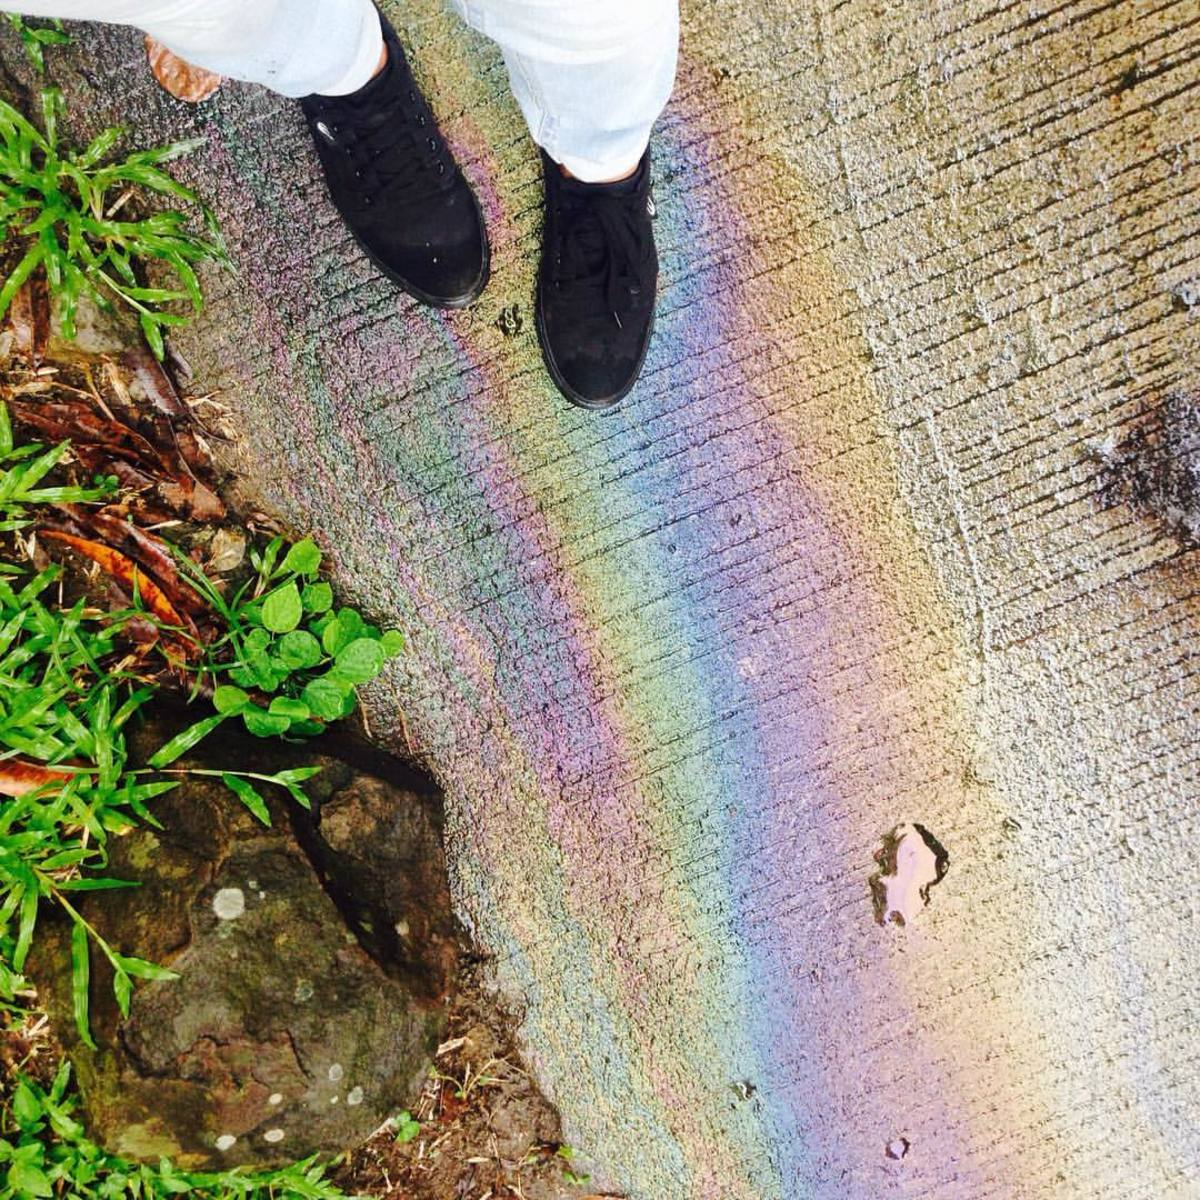 Rainbows at Your Feet